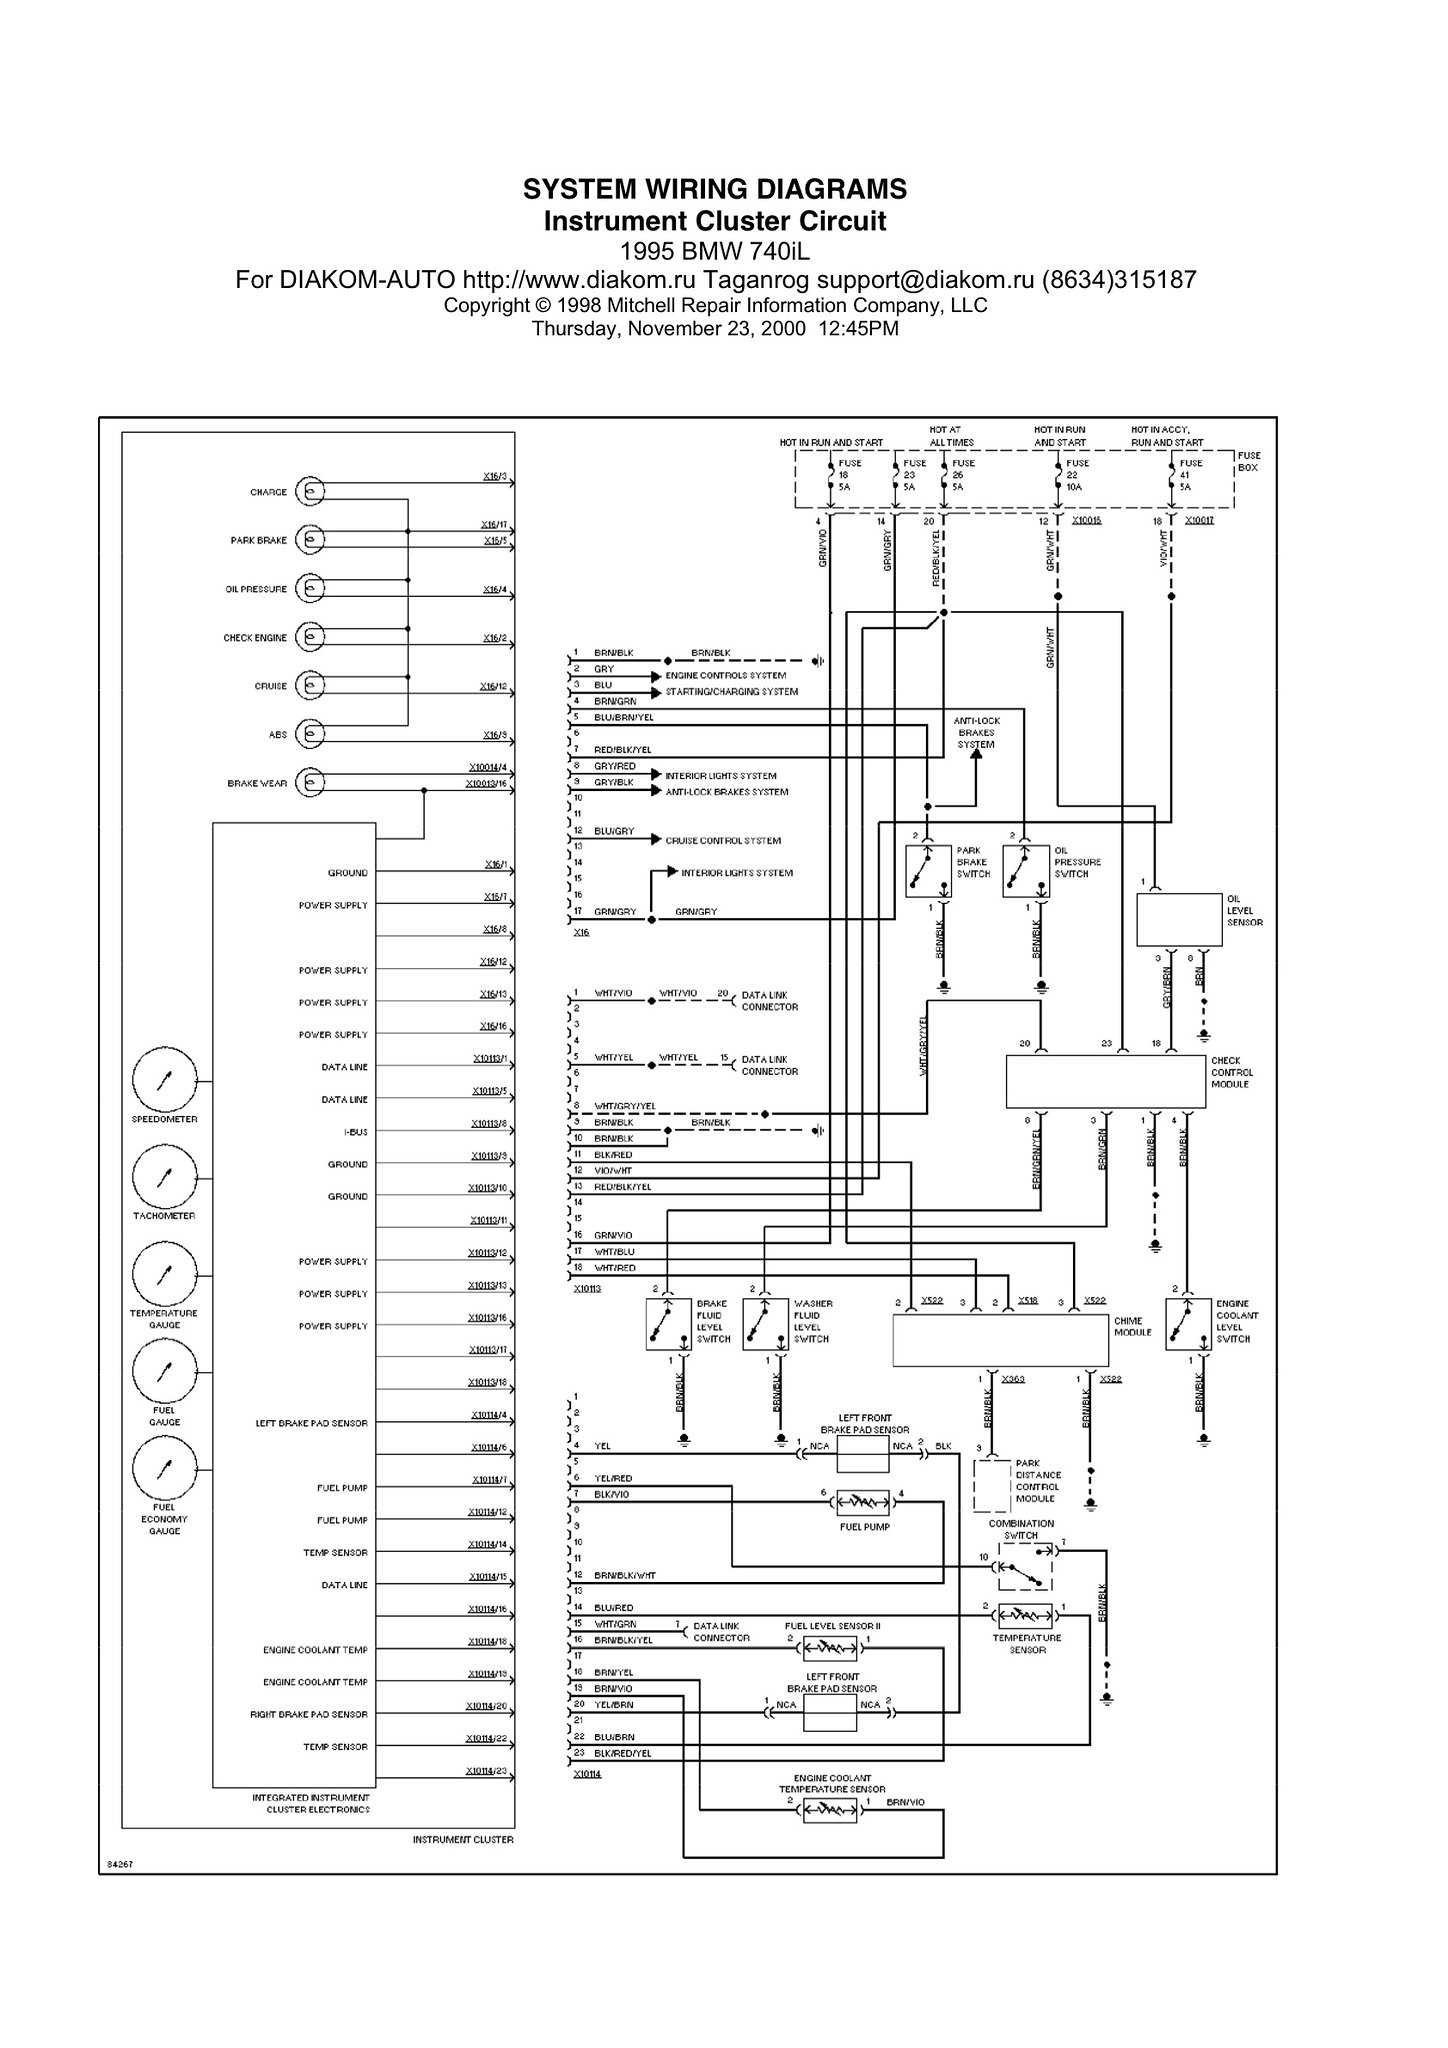 how to power on e39 cluster out of car full wiring diagram for the cluster